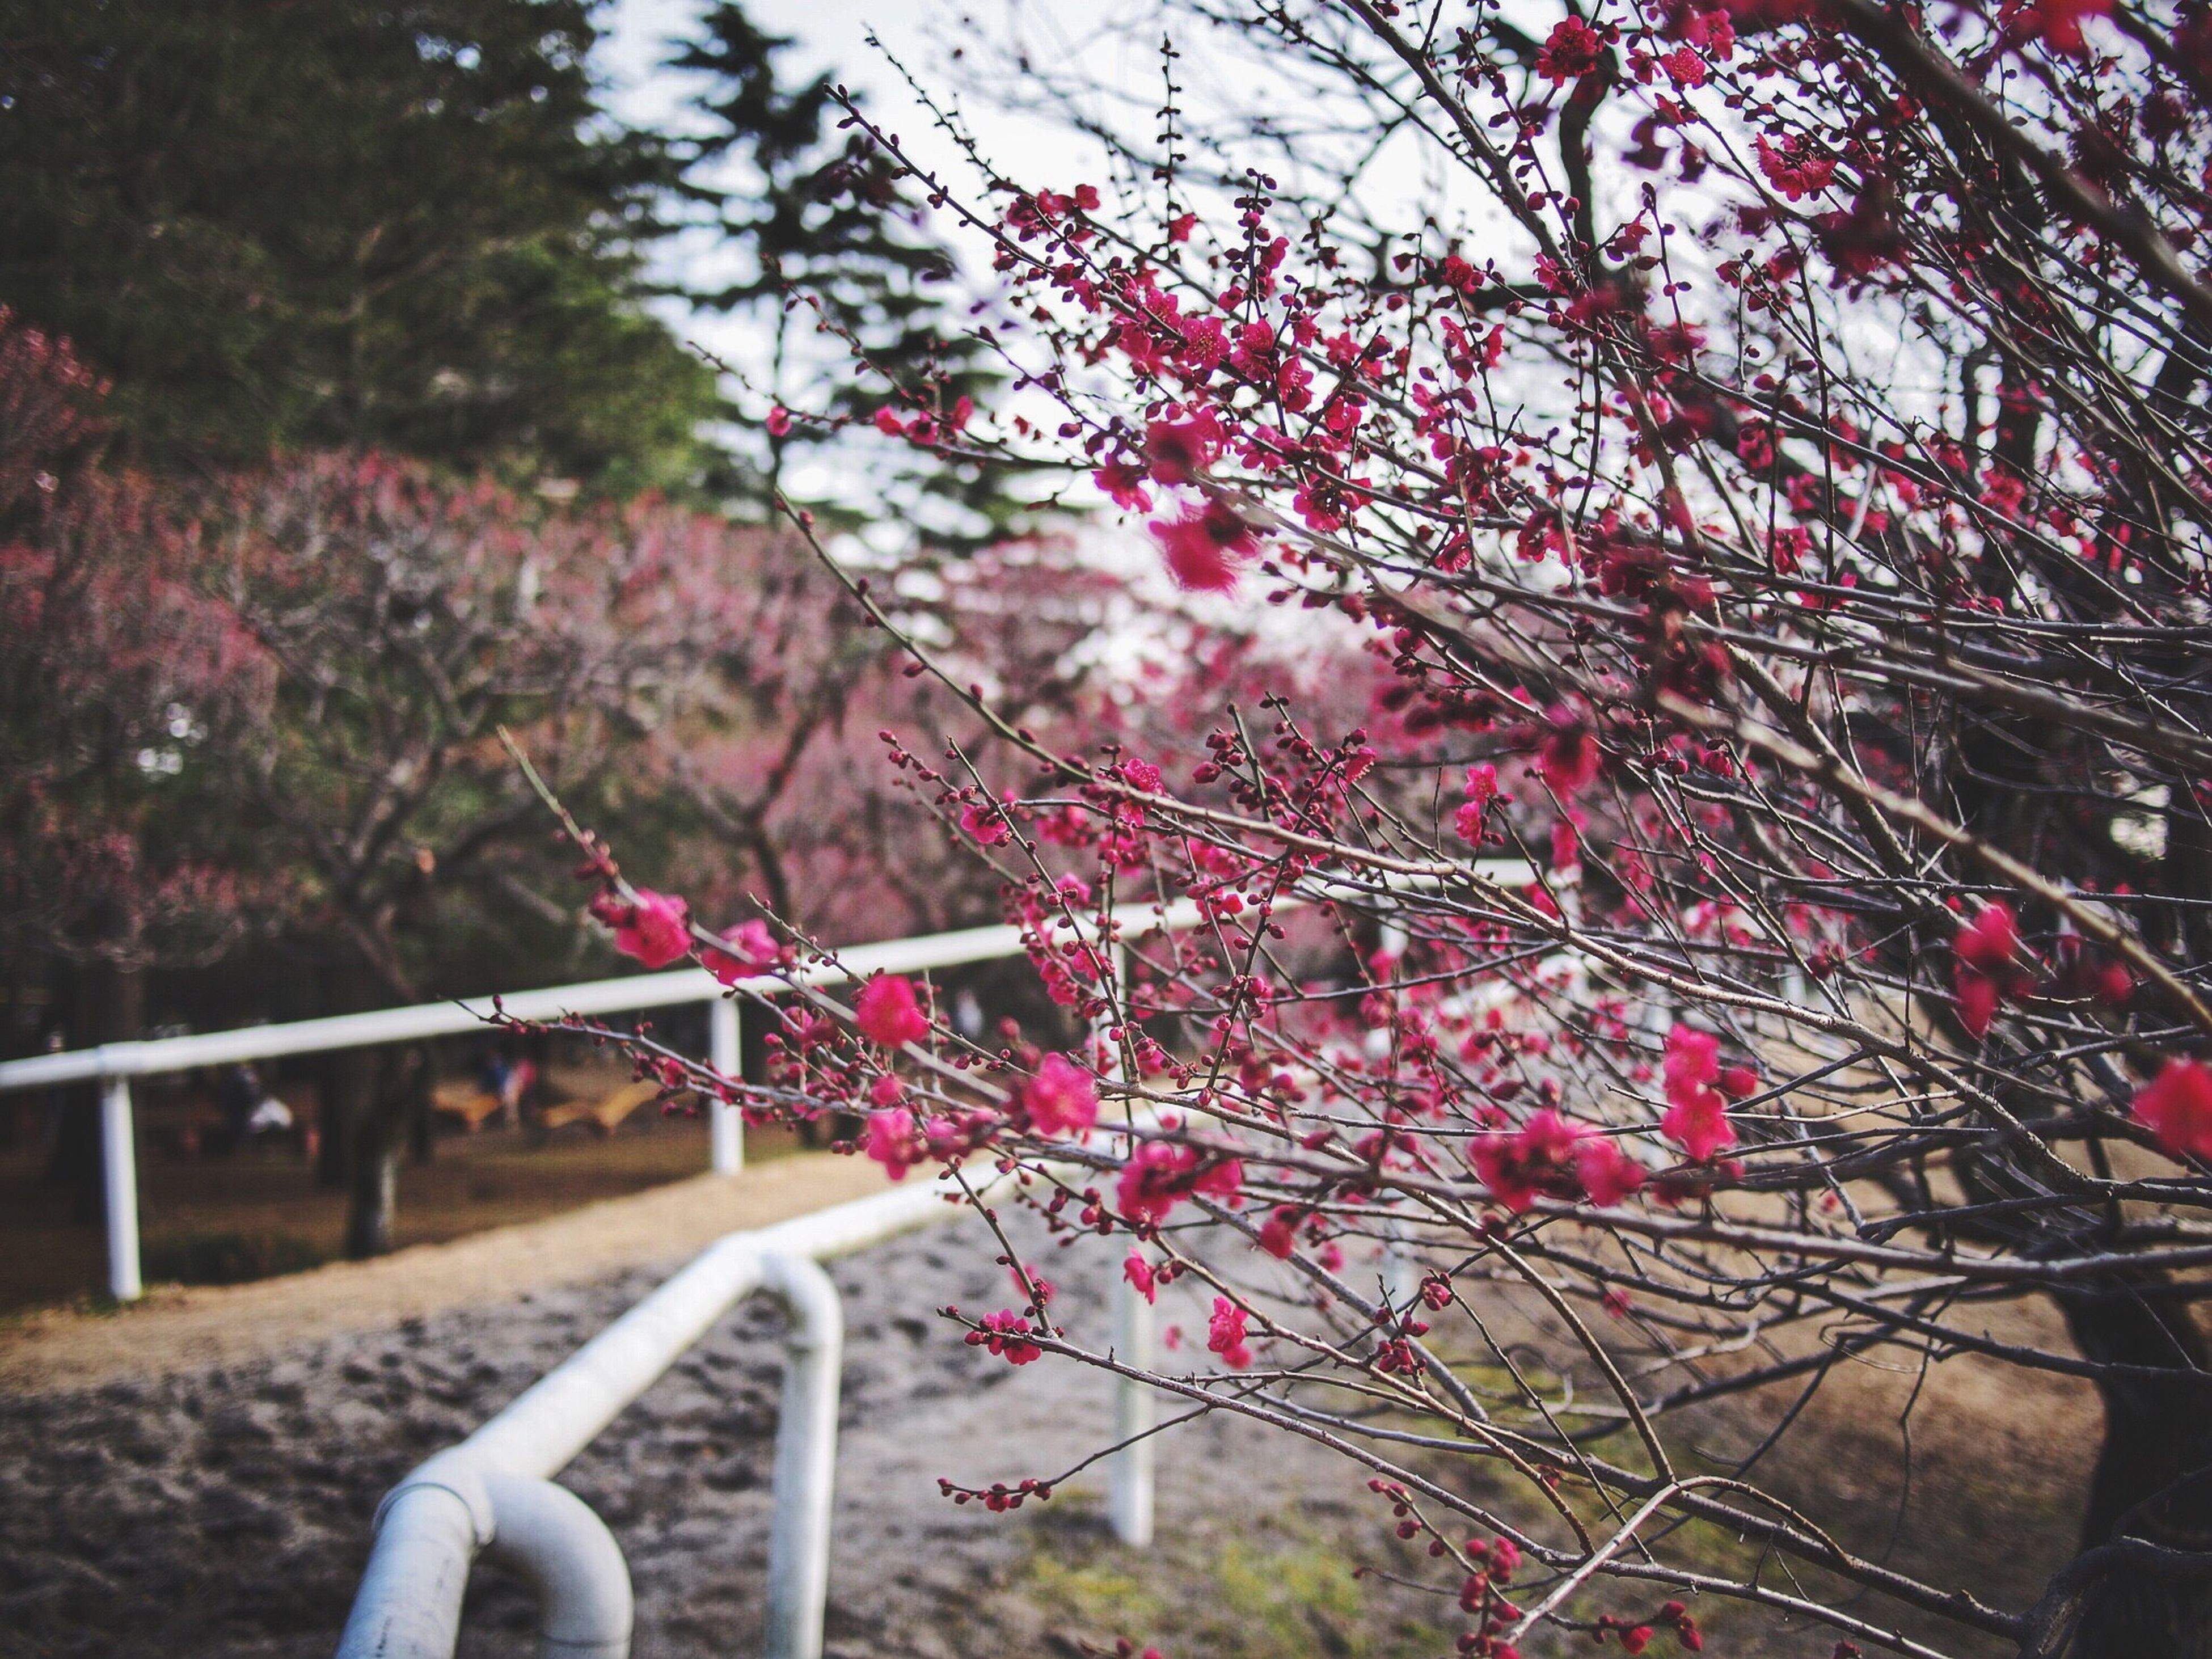 flower, tree, pink color, growth, branch, nature, freshness, fragility, beauty in nature, sunlight, railing, blossom, day, outdoors, no people, focus on foreground, park - man made space, pink, close-up, plant